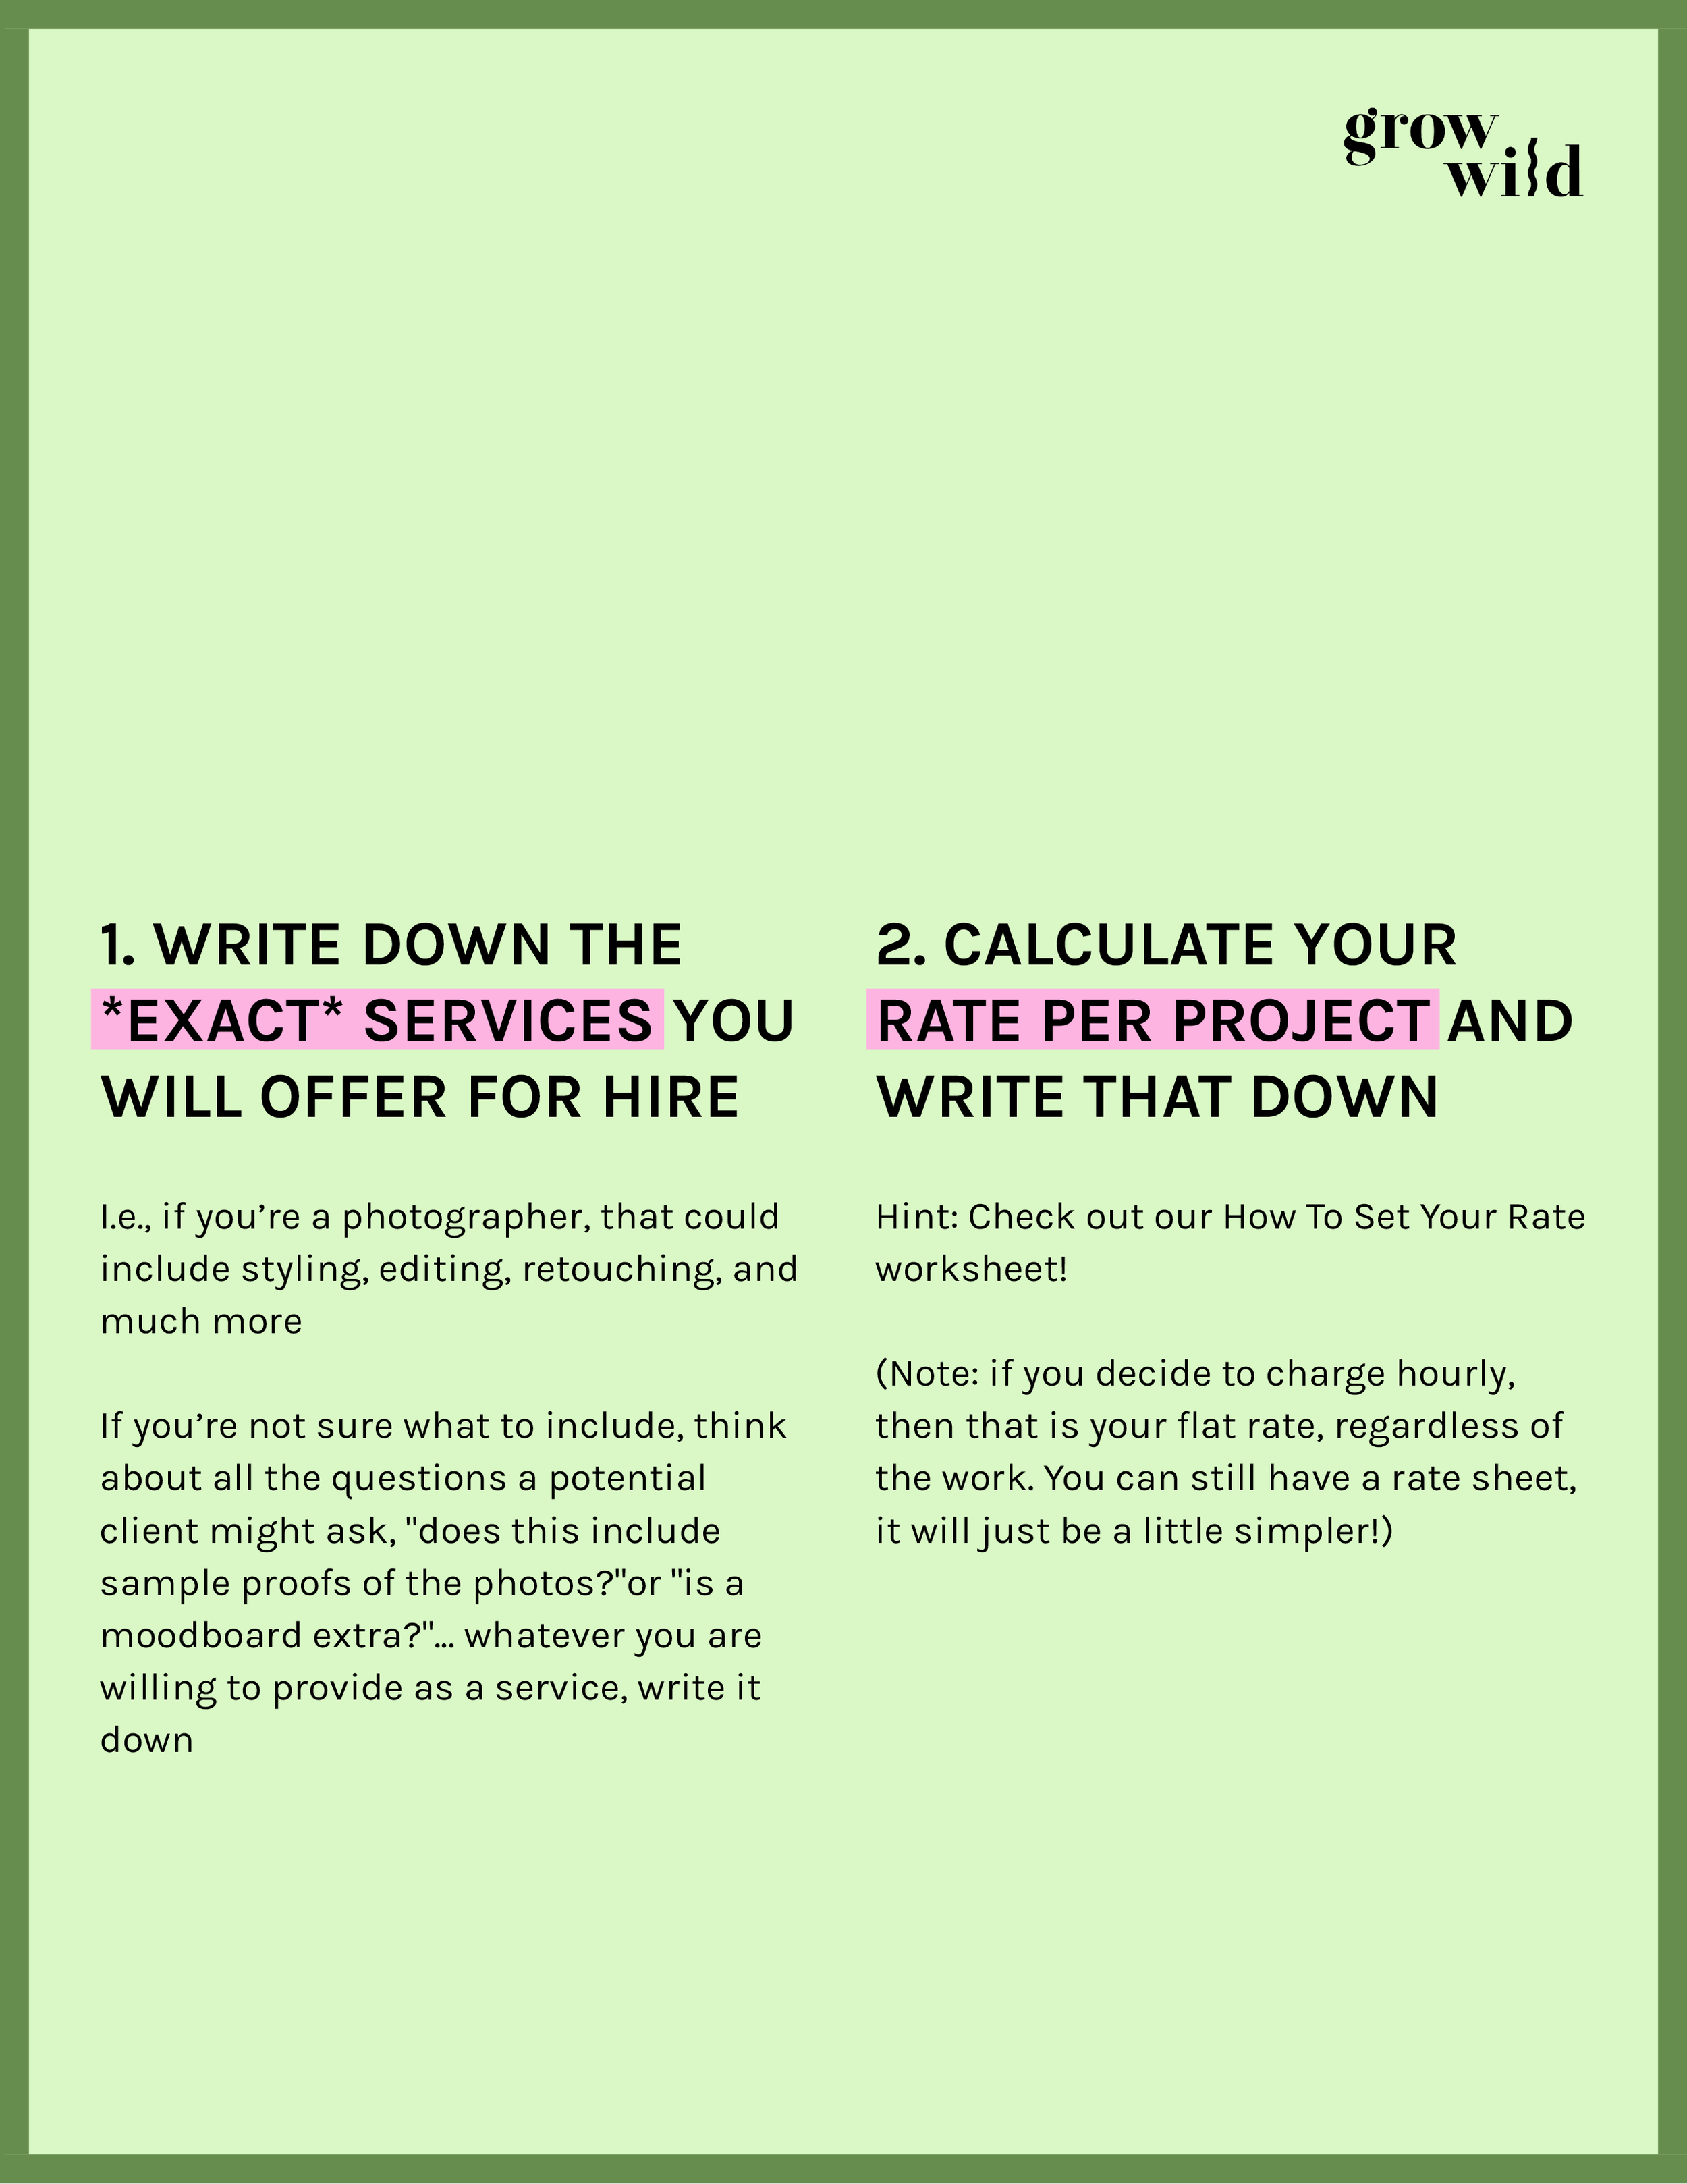 Grow Wild_Worksheet_How to create a rate sheet_0819192.png